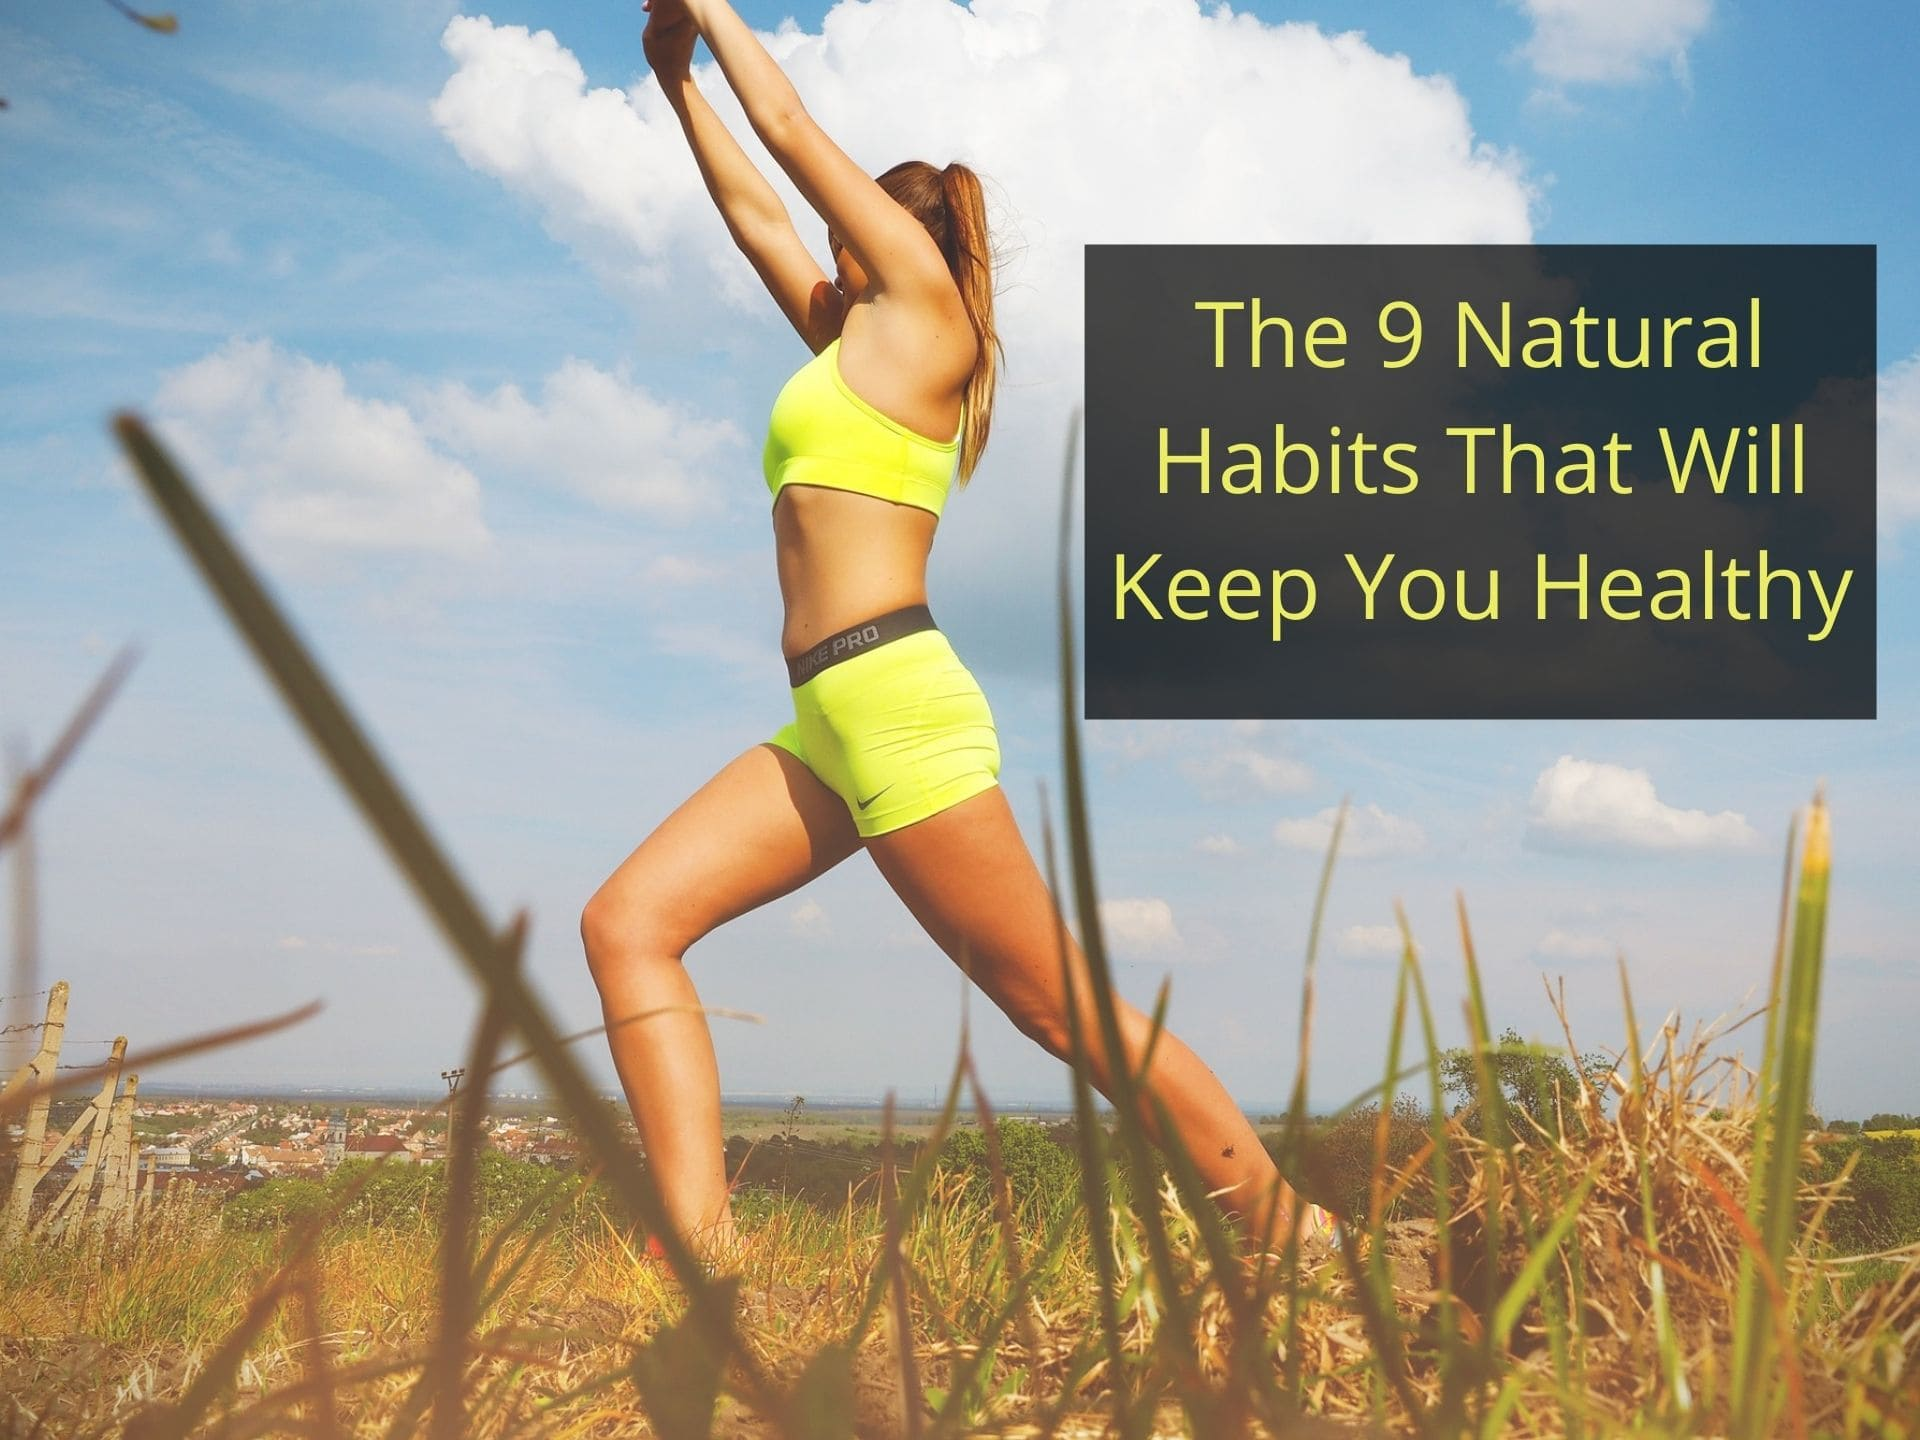 The 9 Natural Habits That Will Keep You Healthy